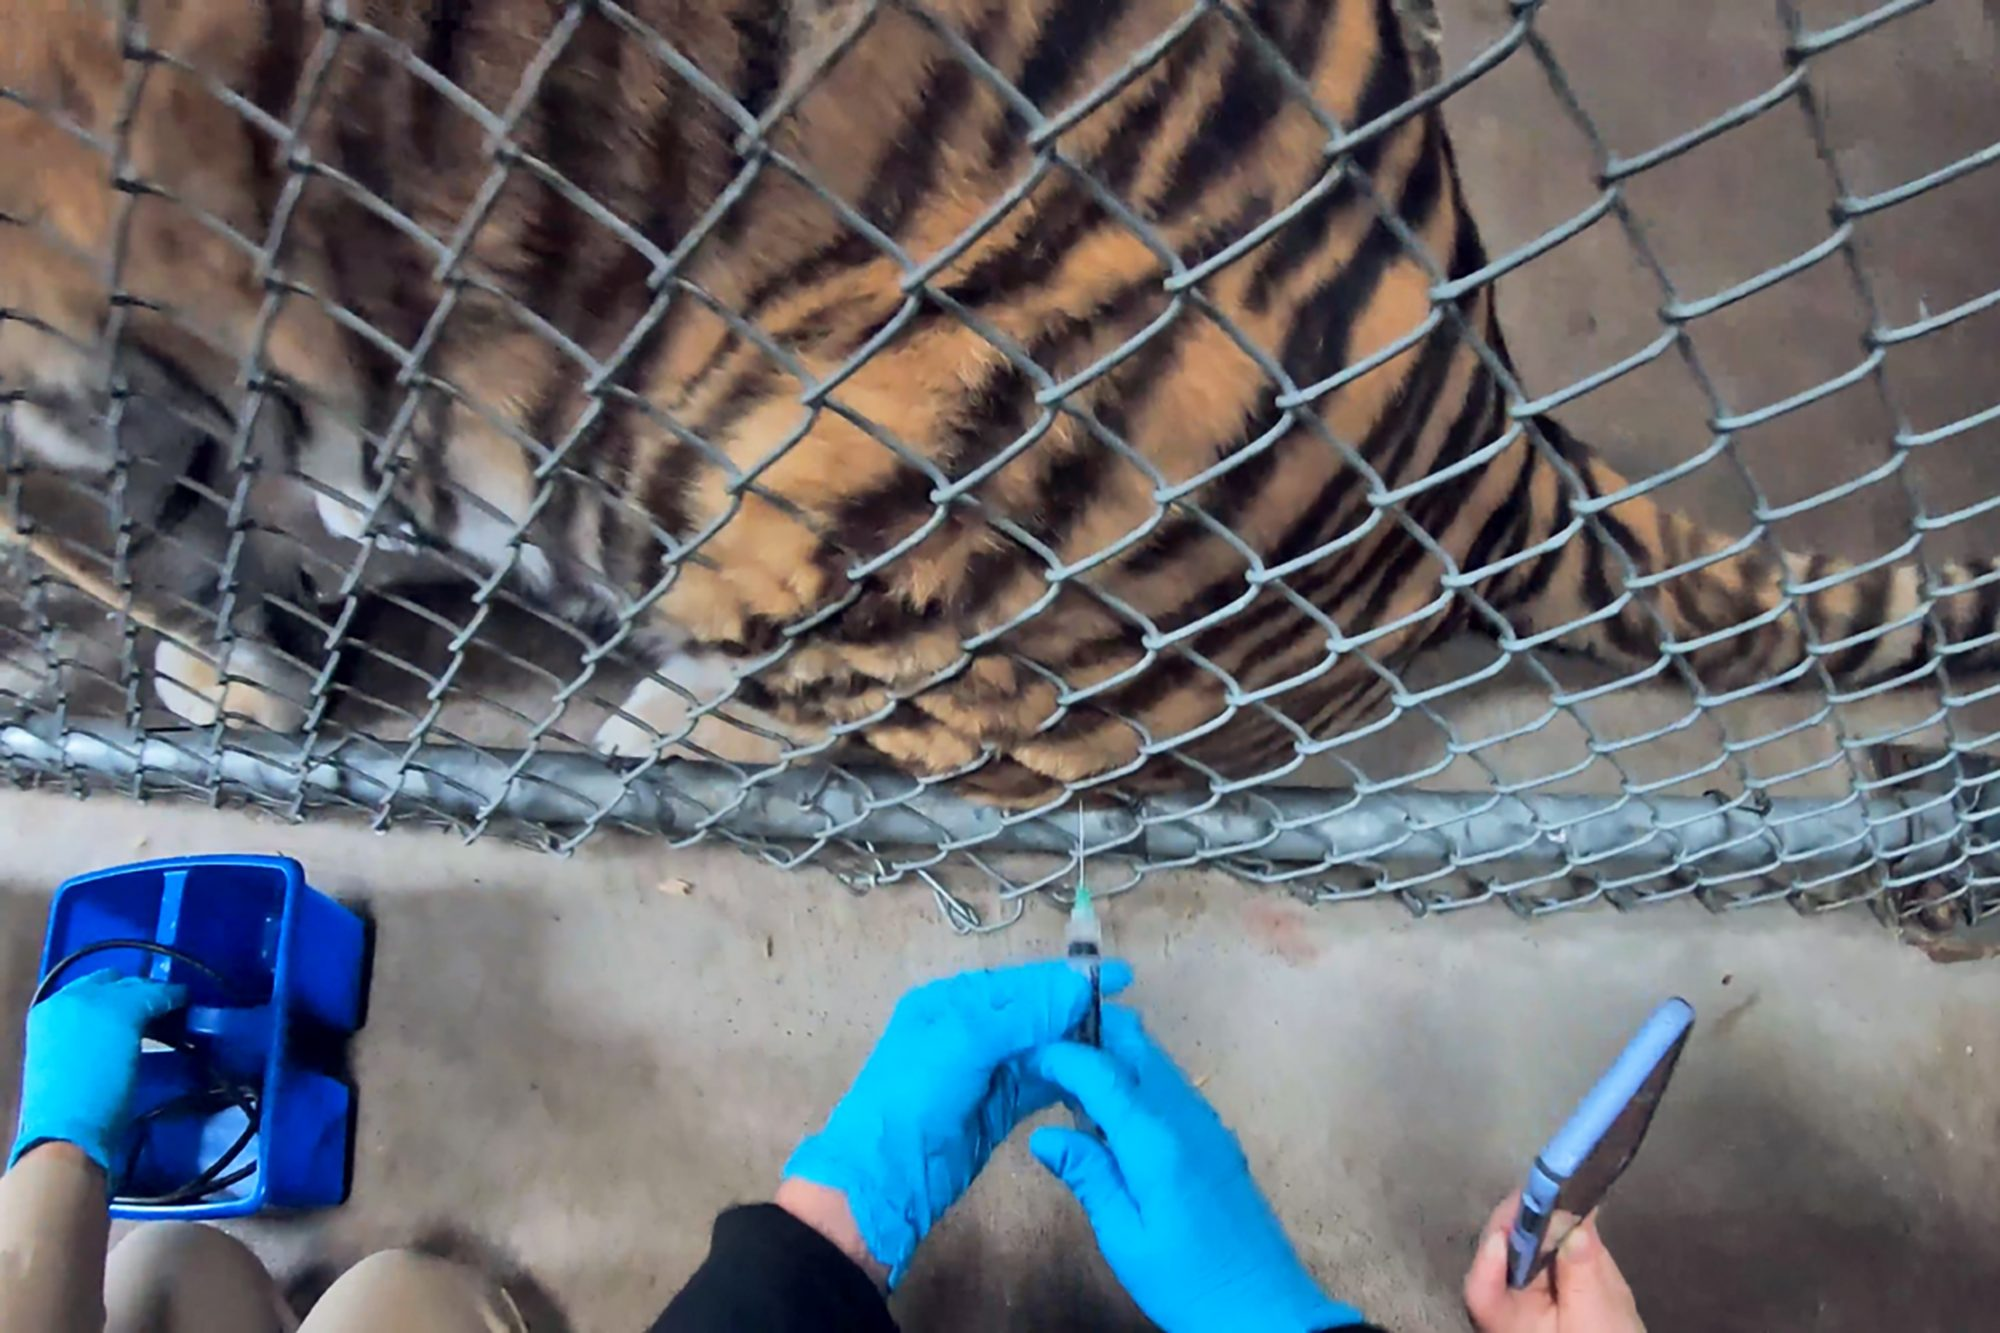 tiger getting a vaccination through chain link fence